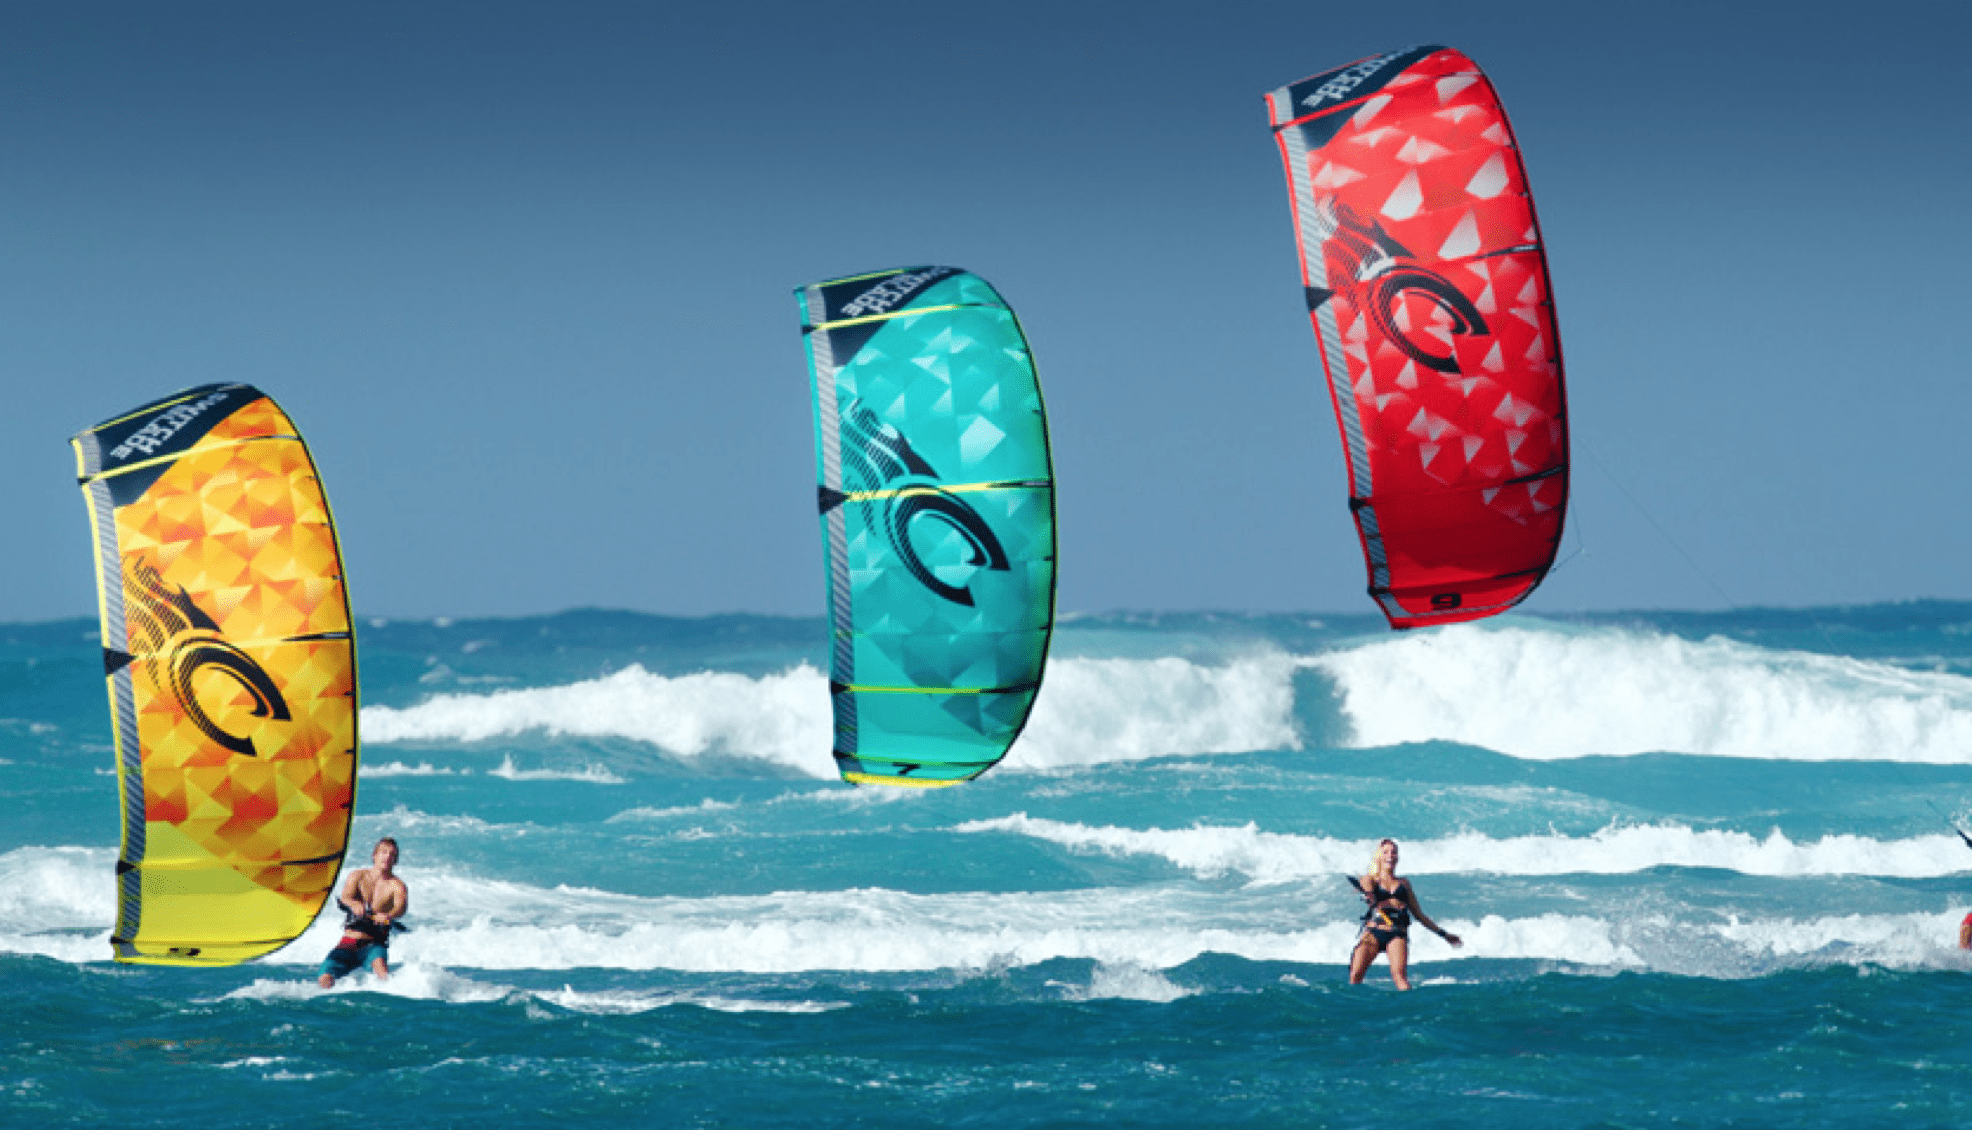 Wallpaper Engine Blue On The Beach Girl 2015 Cabrinha Kiteboarding Product Previews The